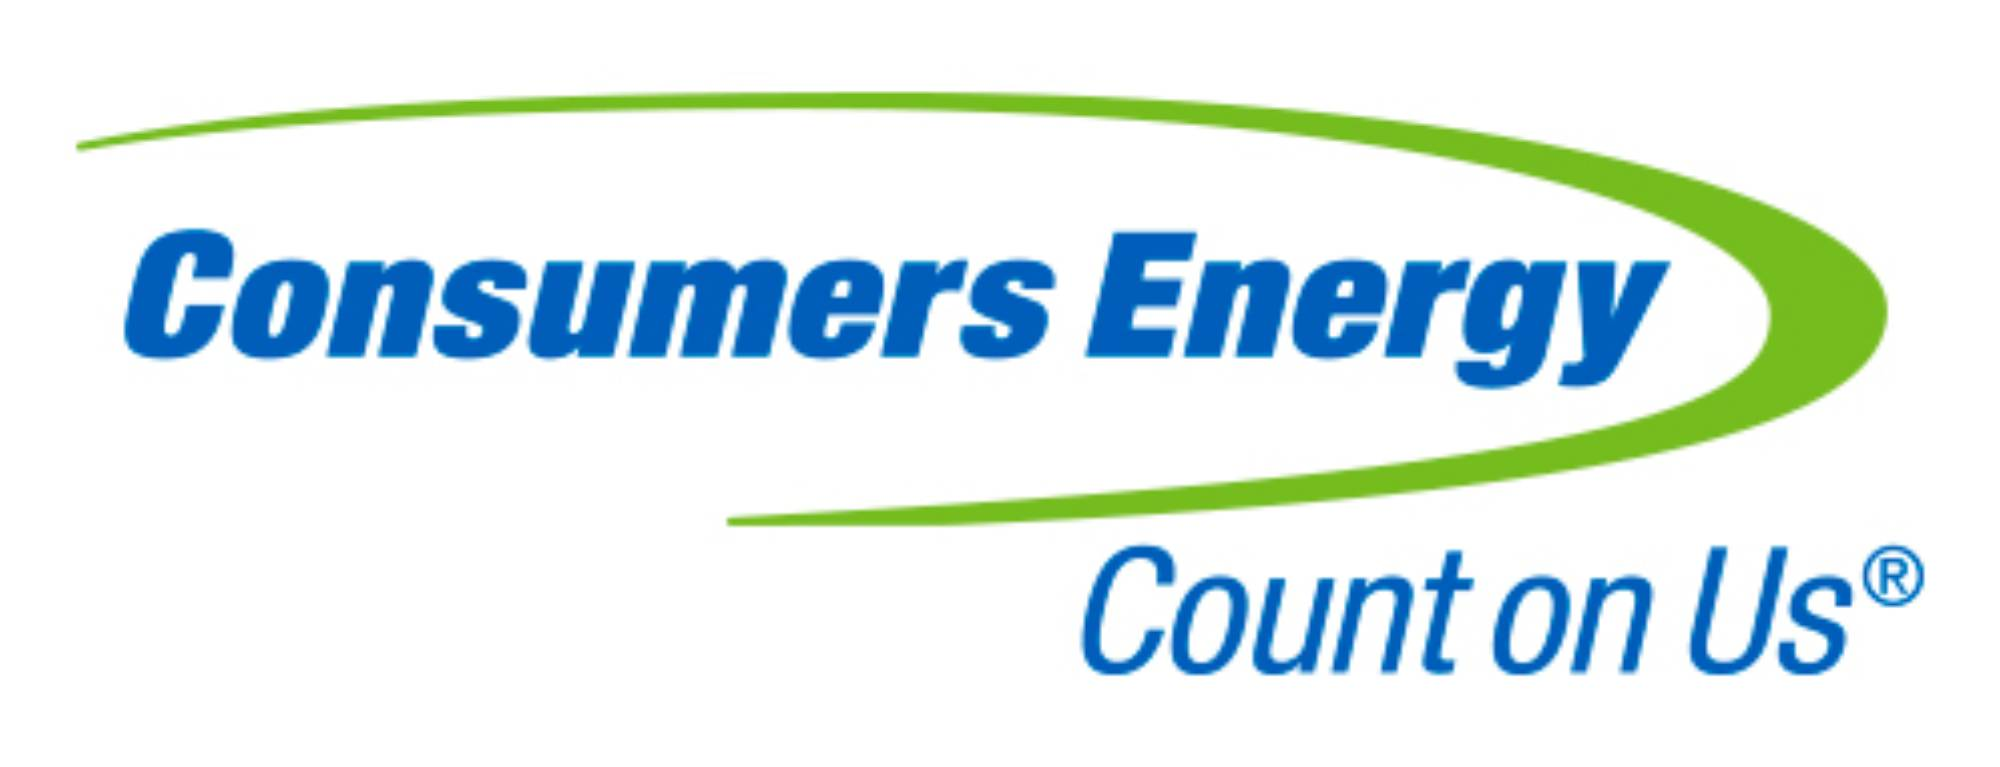 Consumers Energy Count On Us